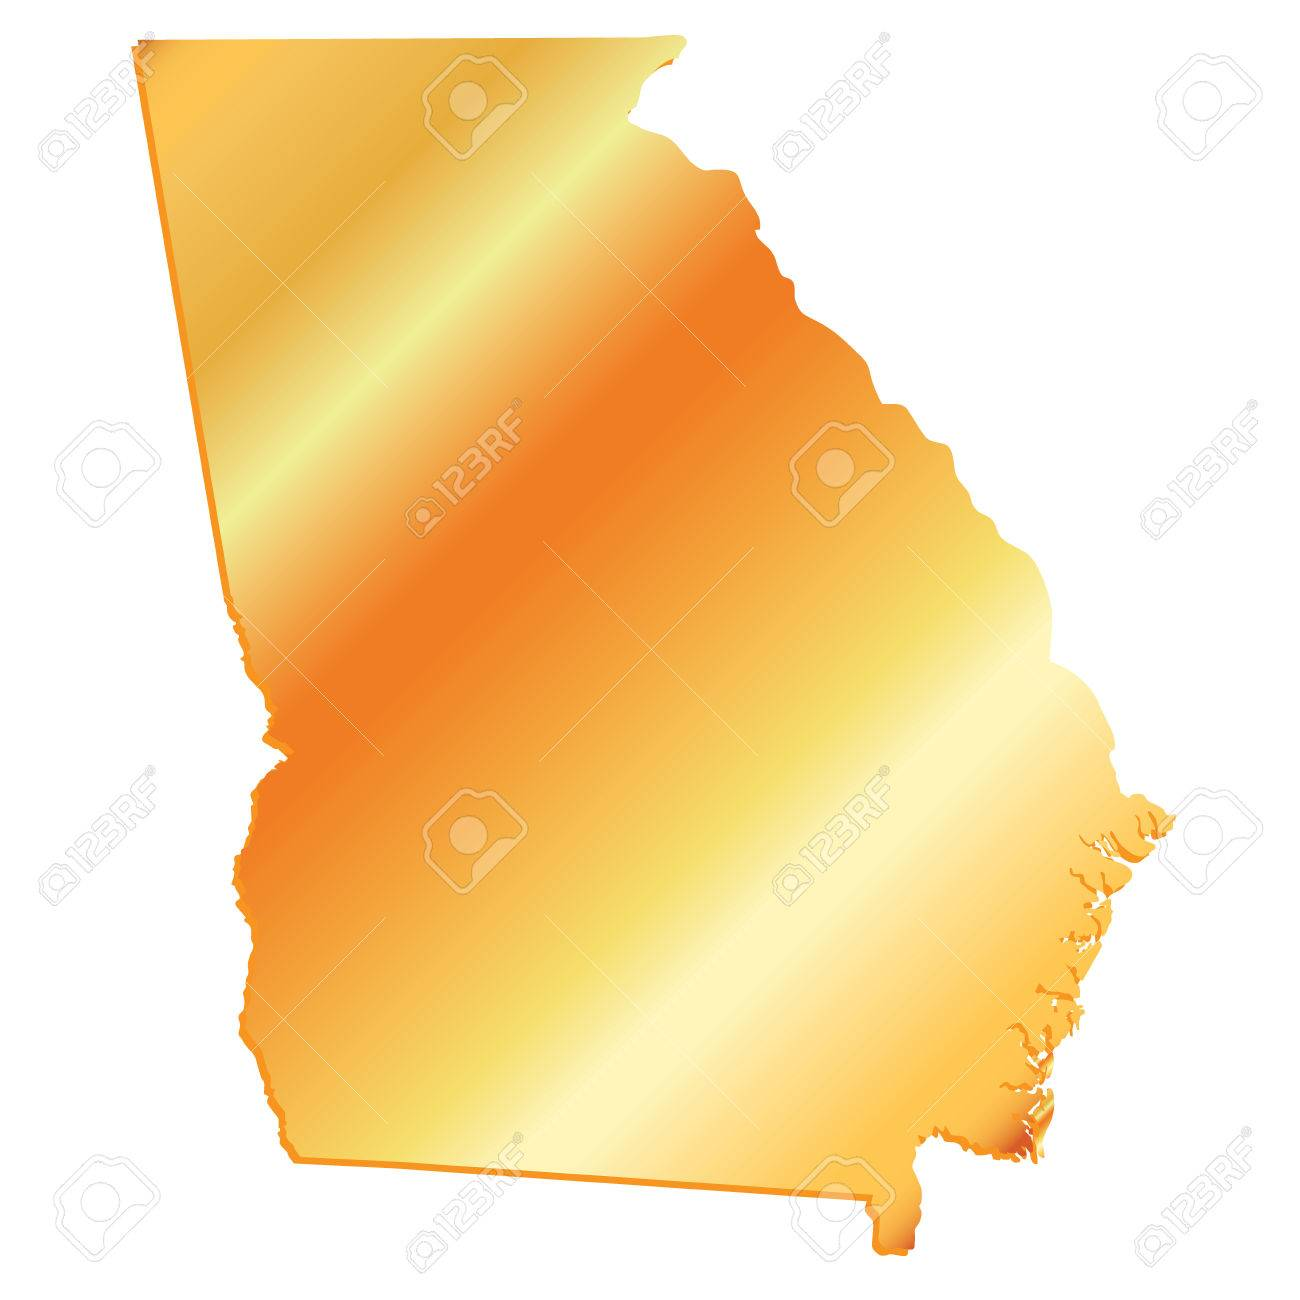 3D Georgia (USA) Gold outline map with shadow.